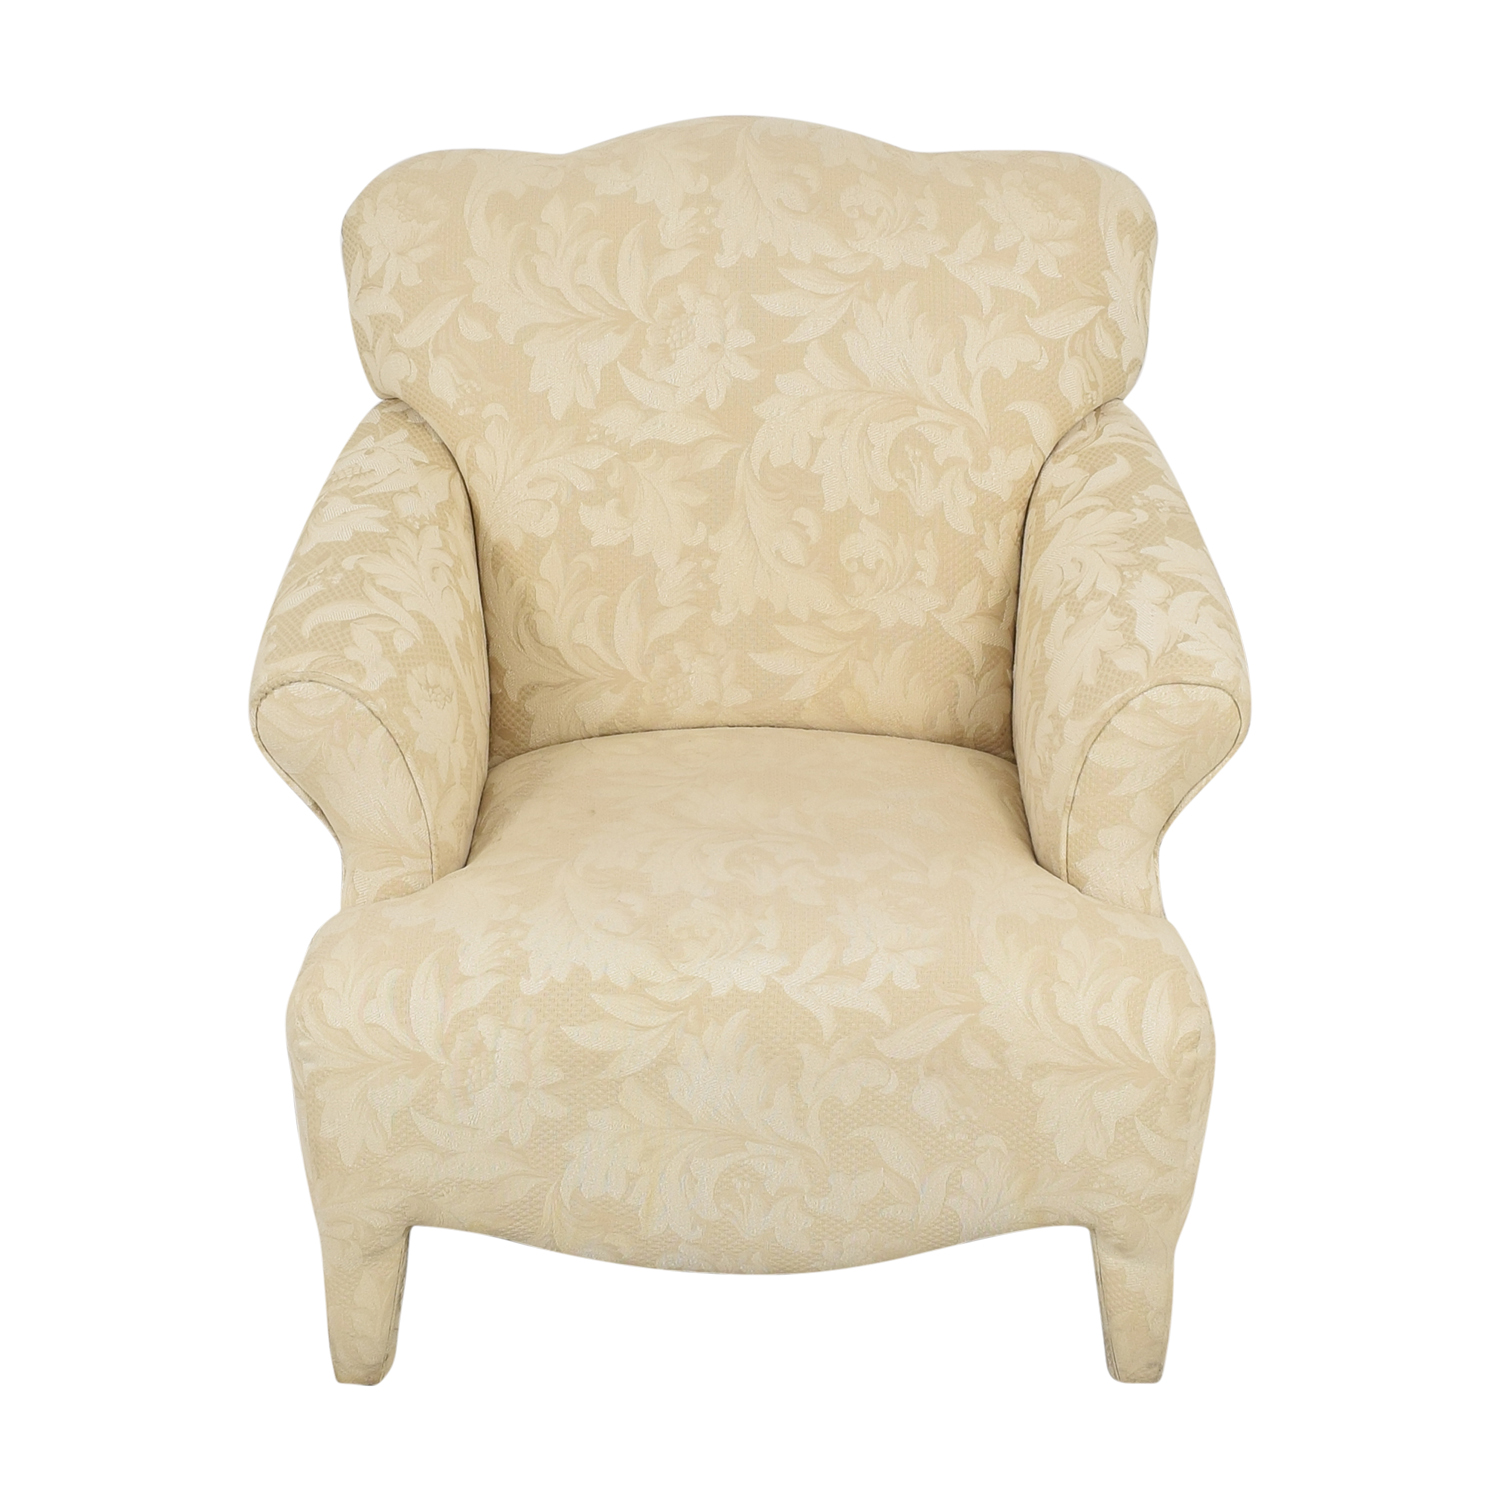 Sealy Sealy Furniture Lounge Chair beige